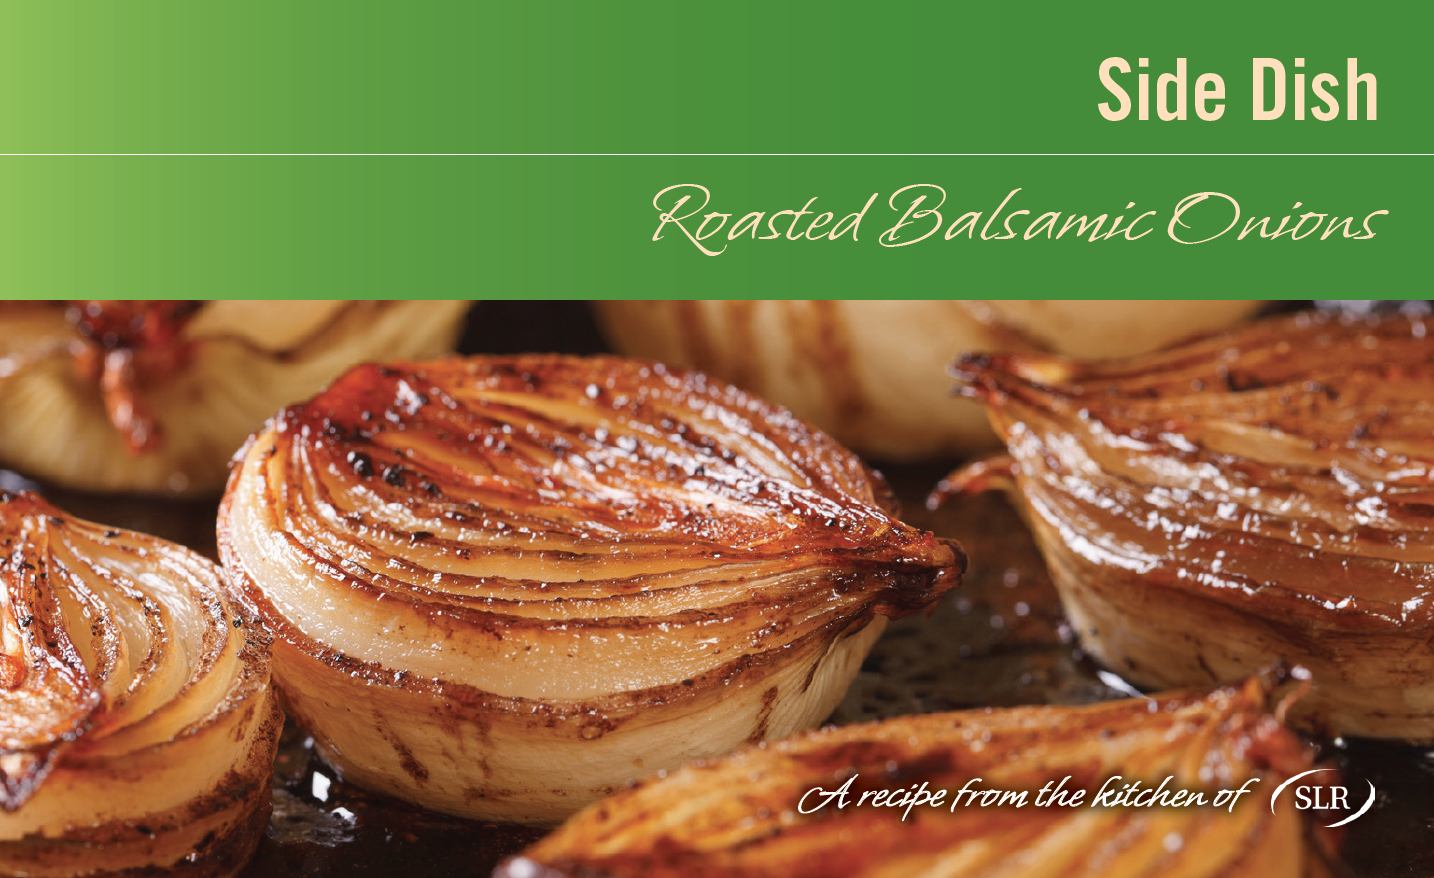 Roasted Balsamic Onions recipe card